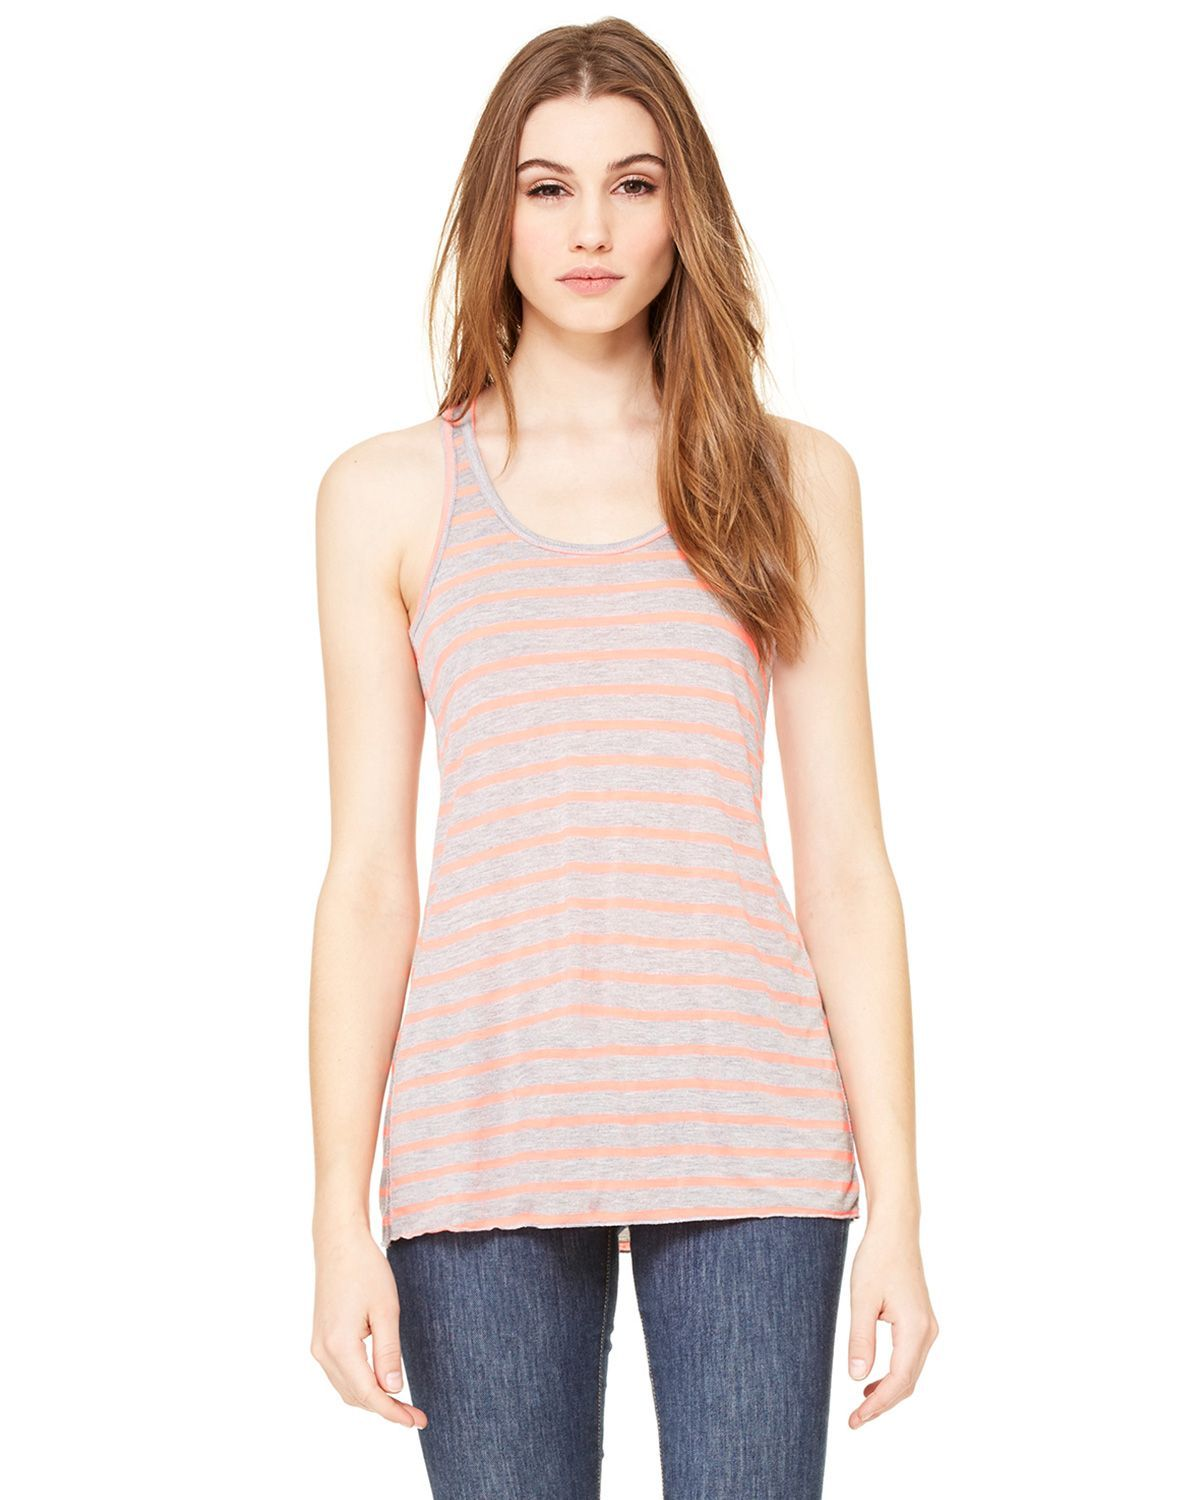 Bella + Canvas B8800 Women's Flowy Racerback Tank - Striped Athletic Heather/Neon Pink - XS from Bella + Canvas